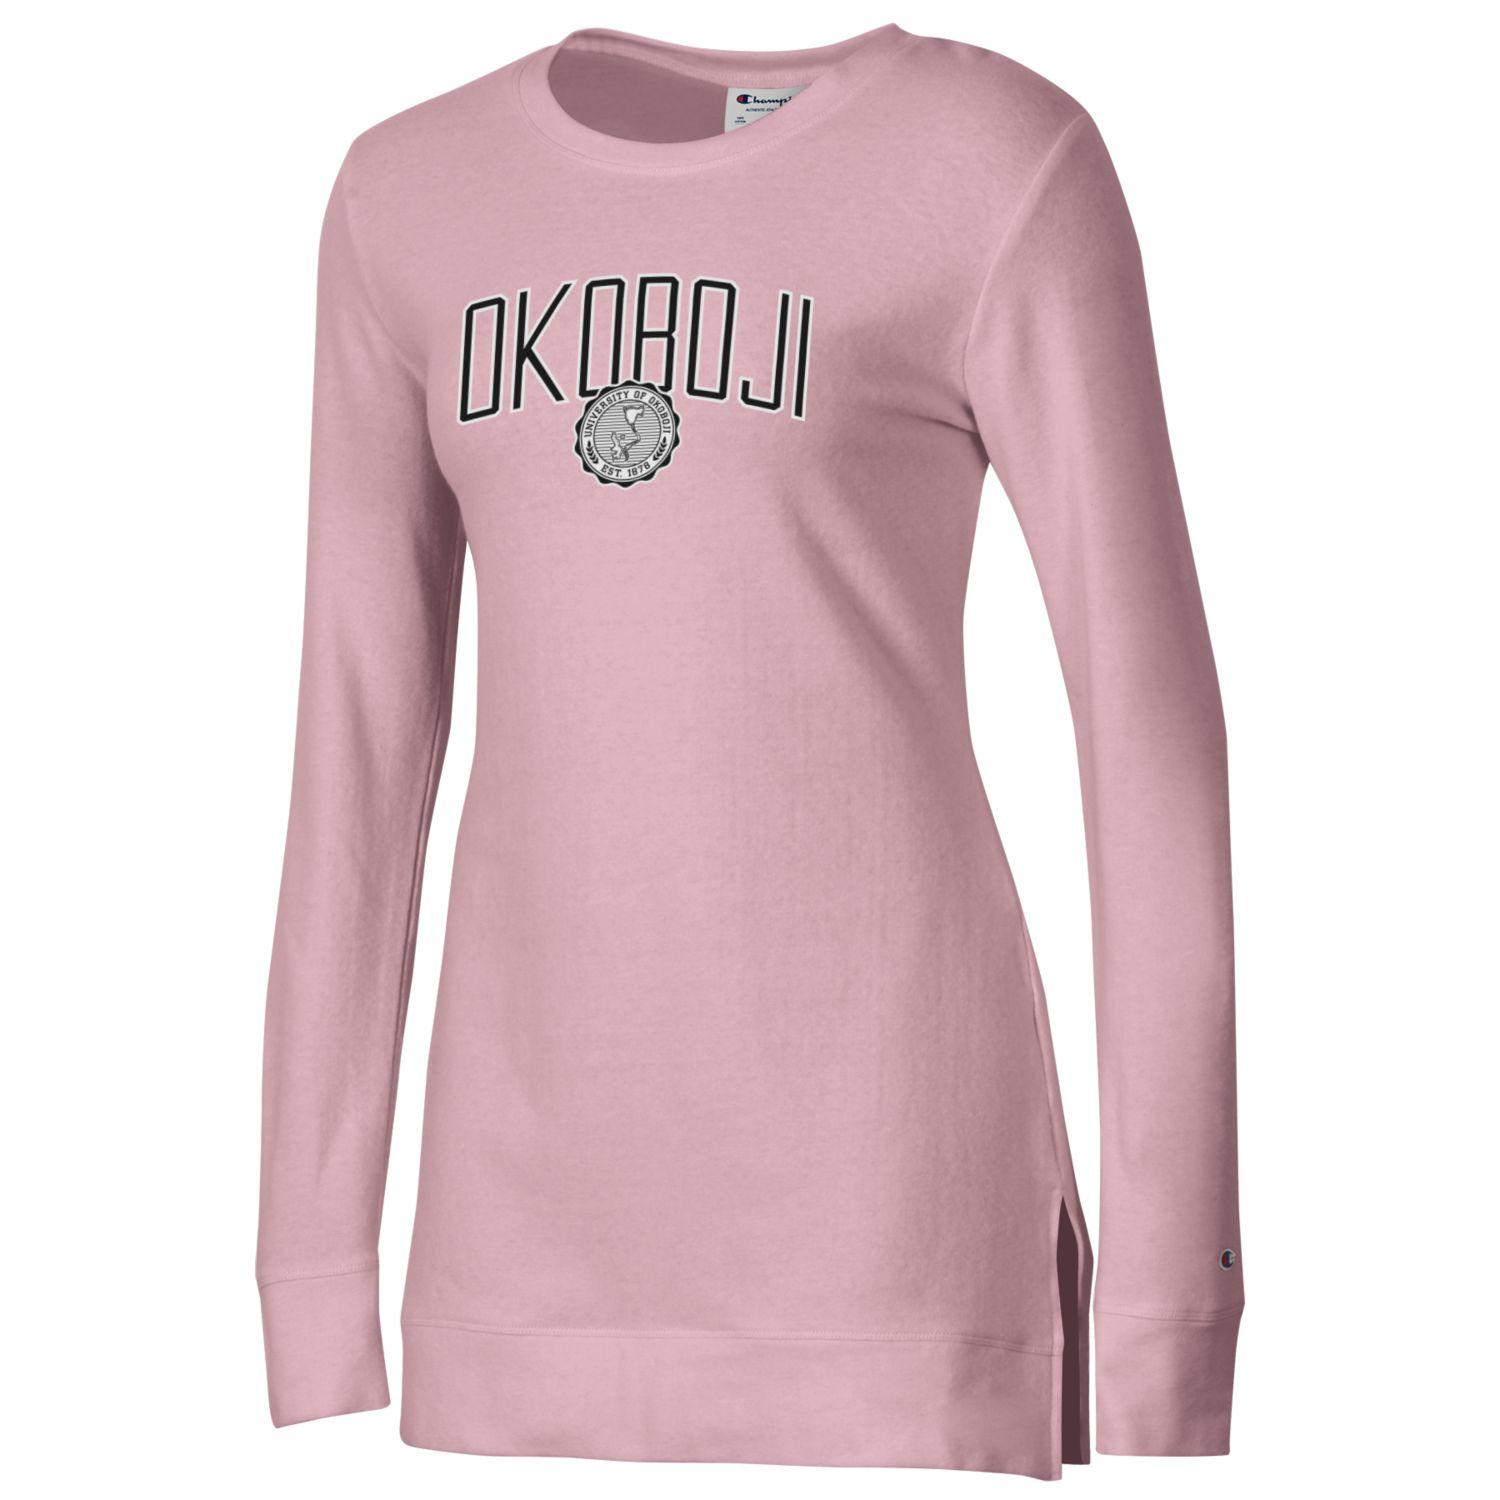 OKOBOJI WOMEN'S UNIVERSITY LOUNGE TUNIC - FEATHER PINK